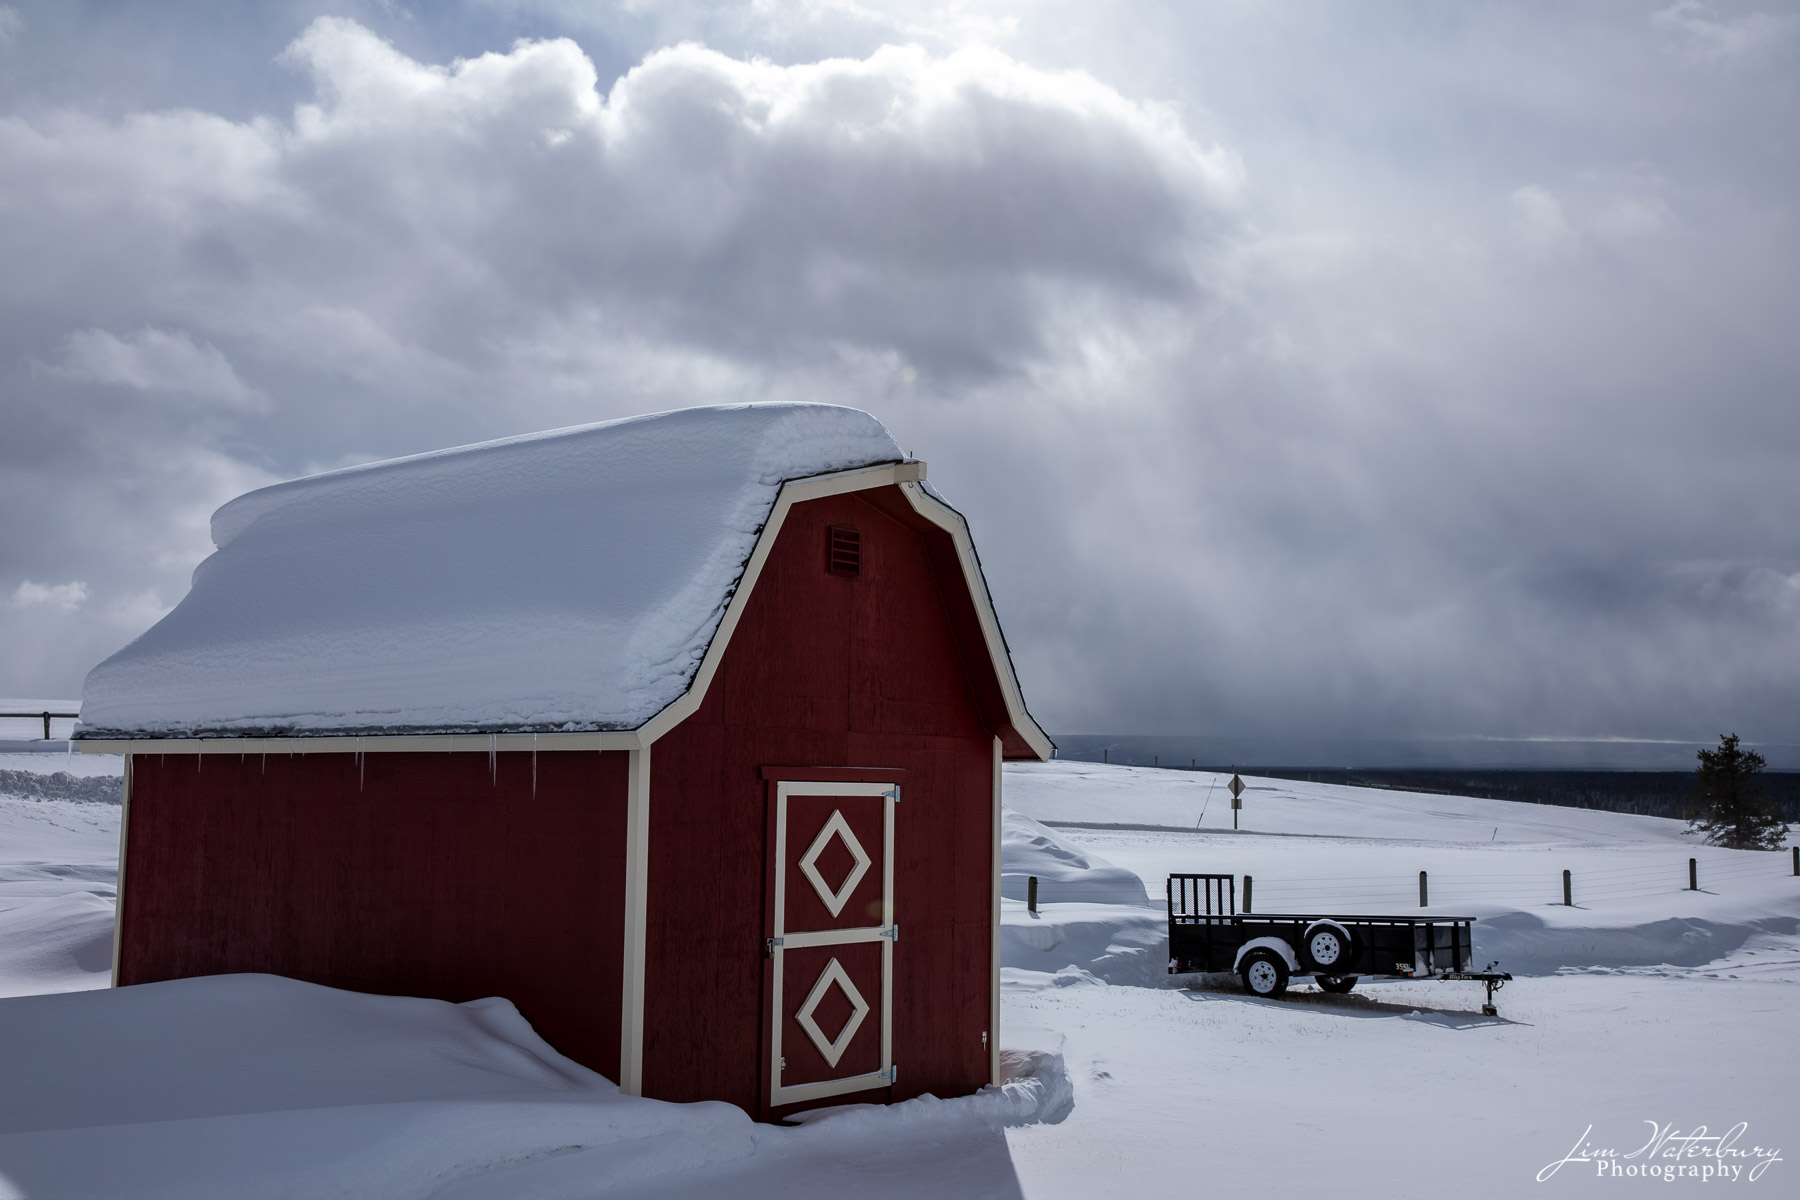 Farm outside West Yellowstone, as the sun starts to break through and the snow departs.